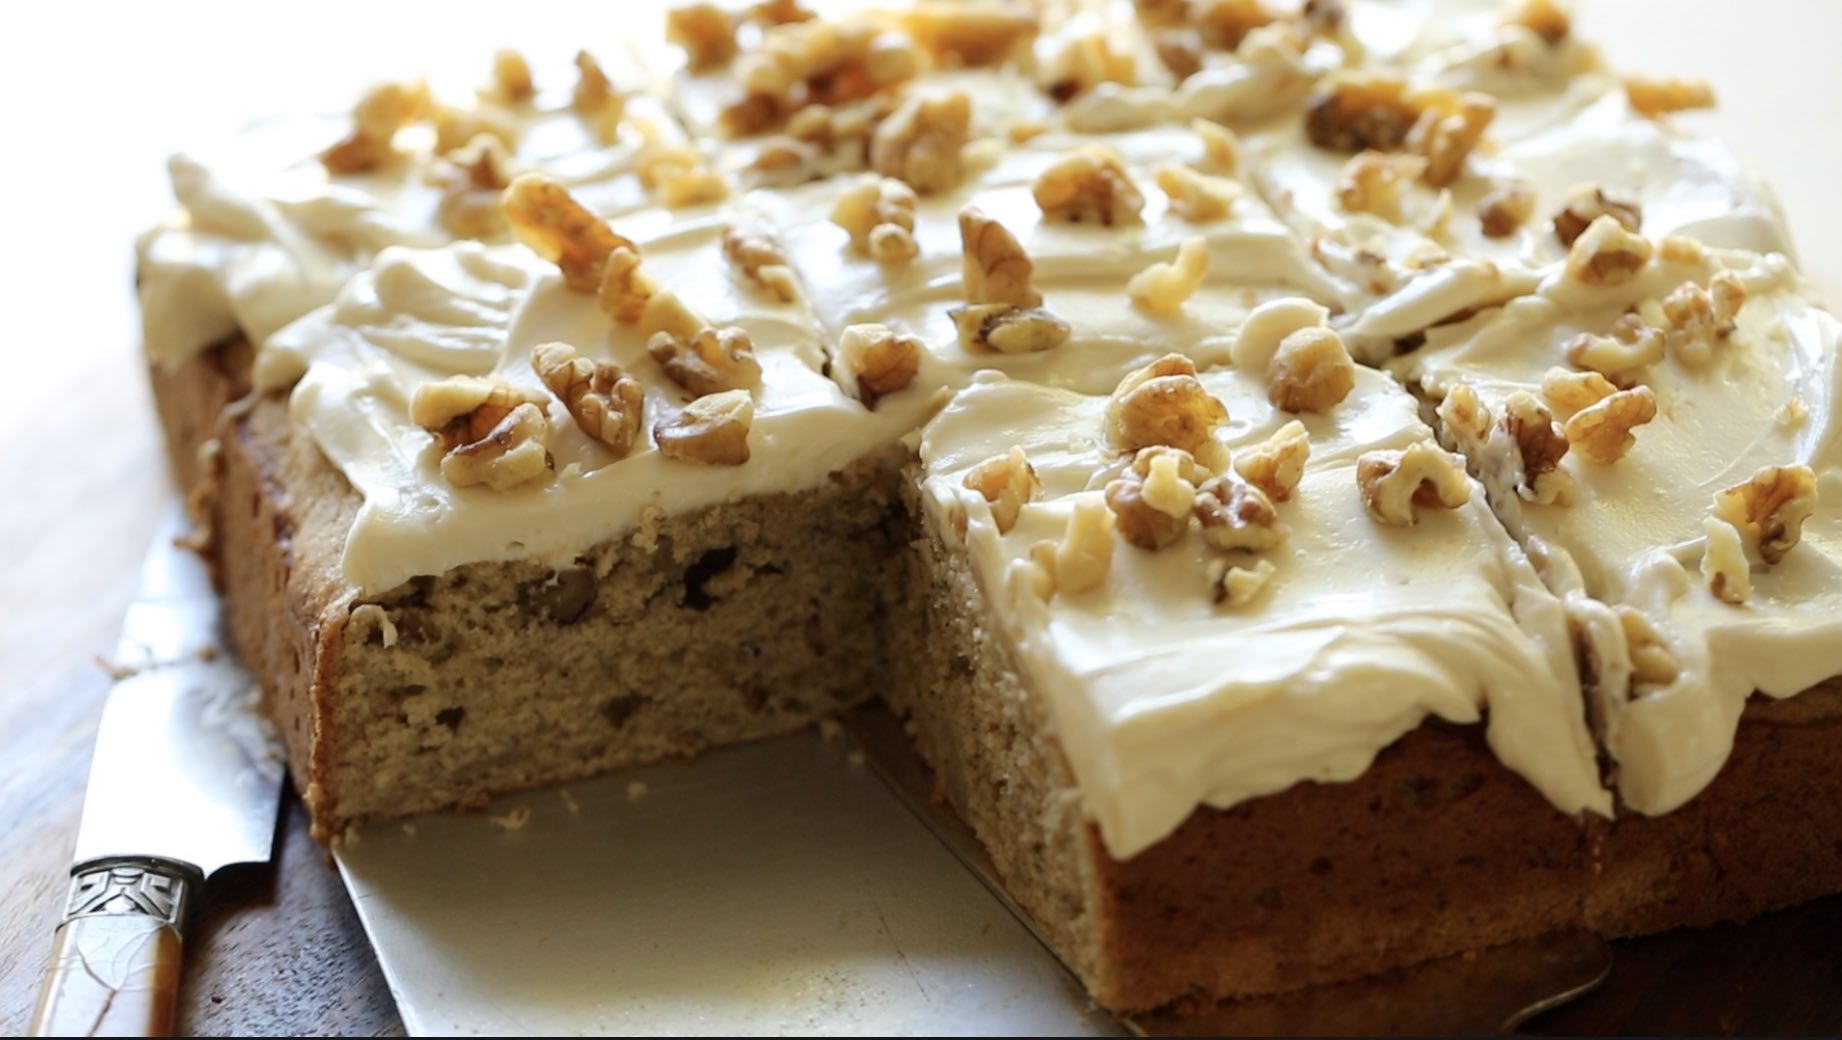 A whole banana cake with cream cheese frosting topped with nuts